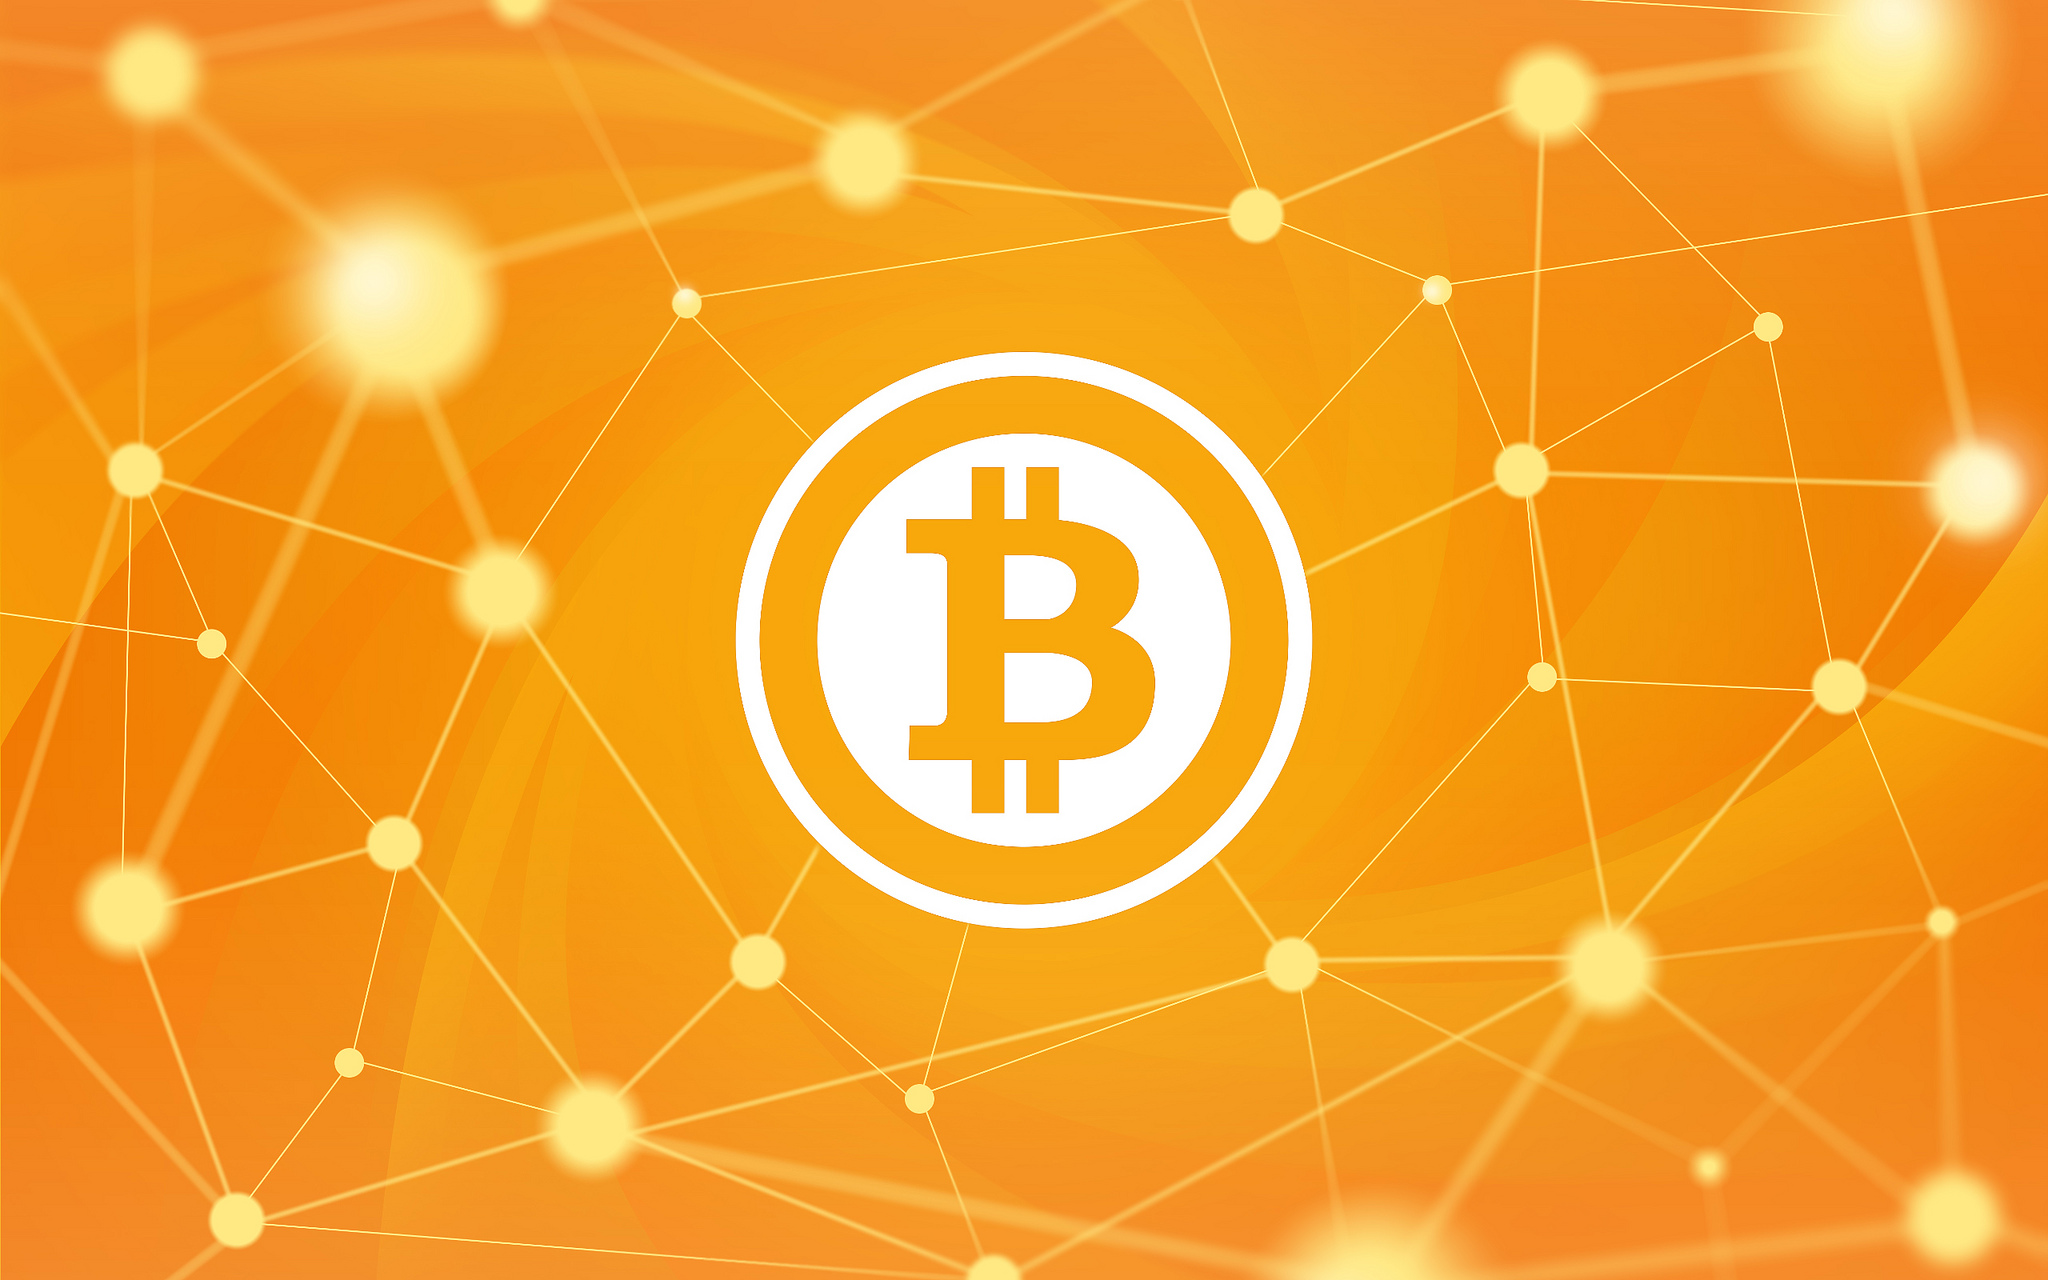 In the past few years, Bitcoin has seen wild swings in its value against  the USD, from $1,242 at its peak in November 2013, to around $195 at the  time of ...